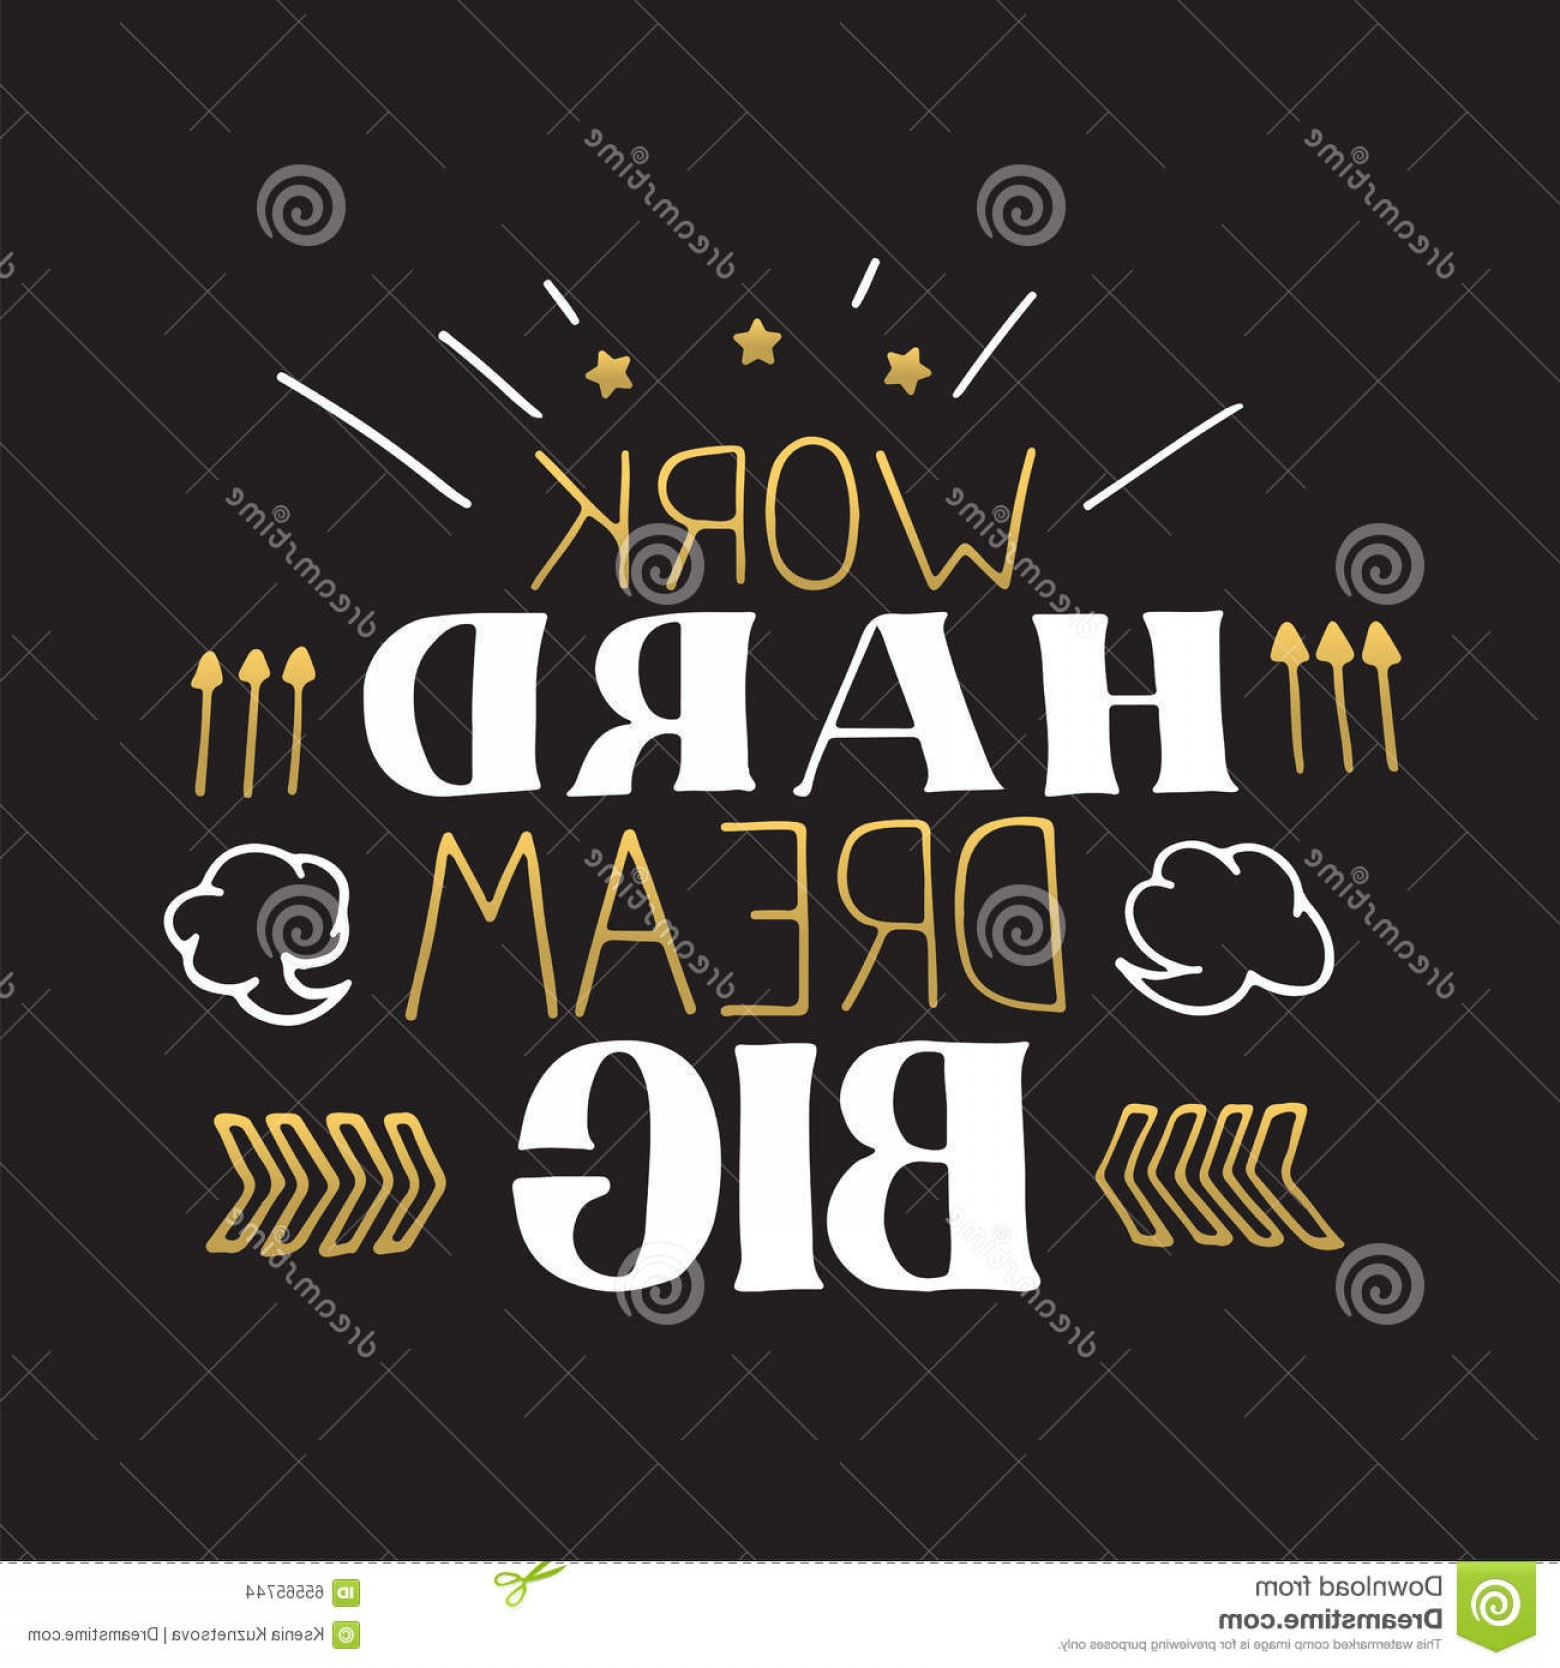 Happy Workplace Anniversary Vector: Stock Illustration Concept Hand Lettering Motivational Quote Work Hard Dream Big Vector Motivation Poster Design Creative Grunge Image